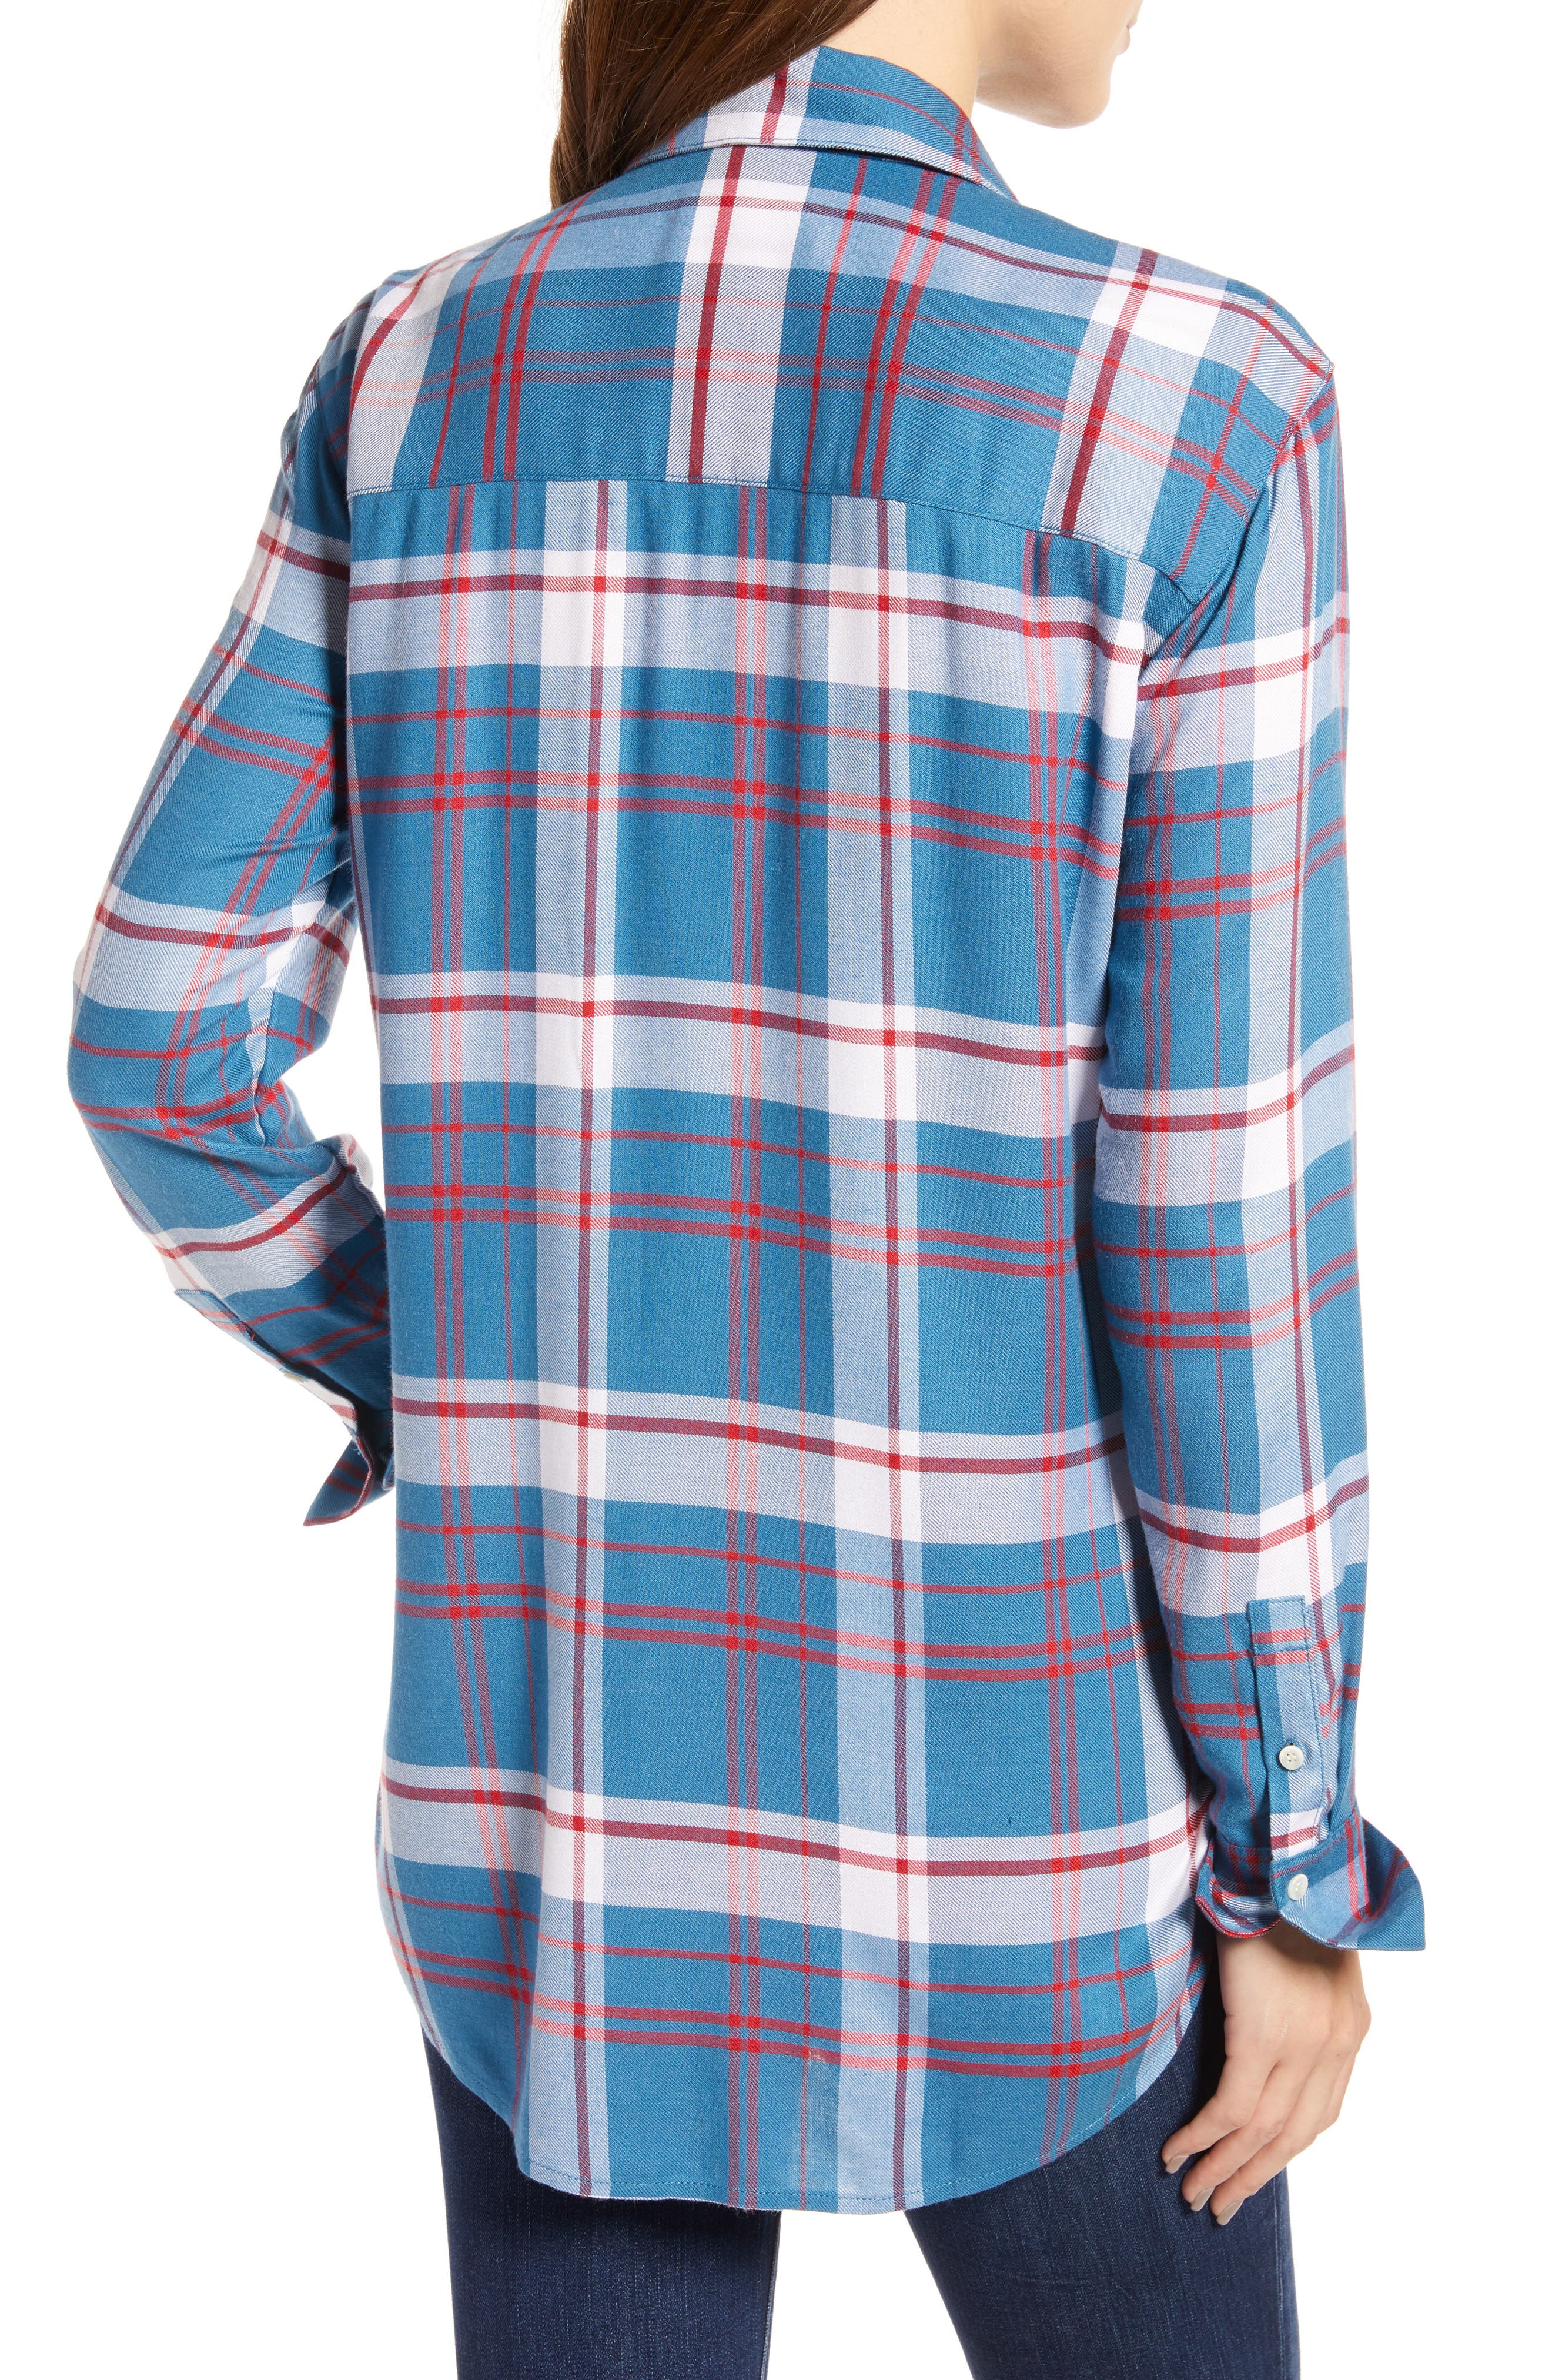 Plaid Boyfriend Shirt,                             Alternate thumbnail 2, color,                             BLUE WATER FOREST PLAID